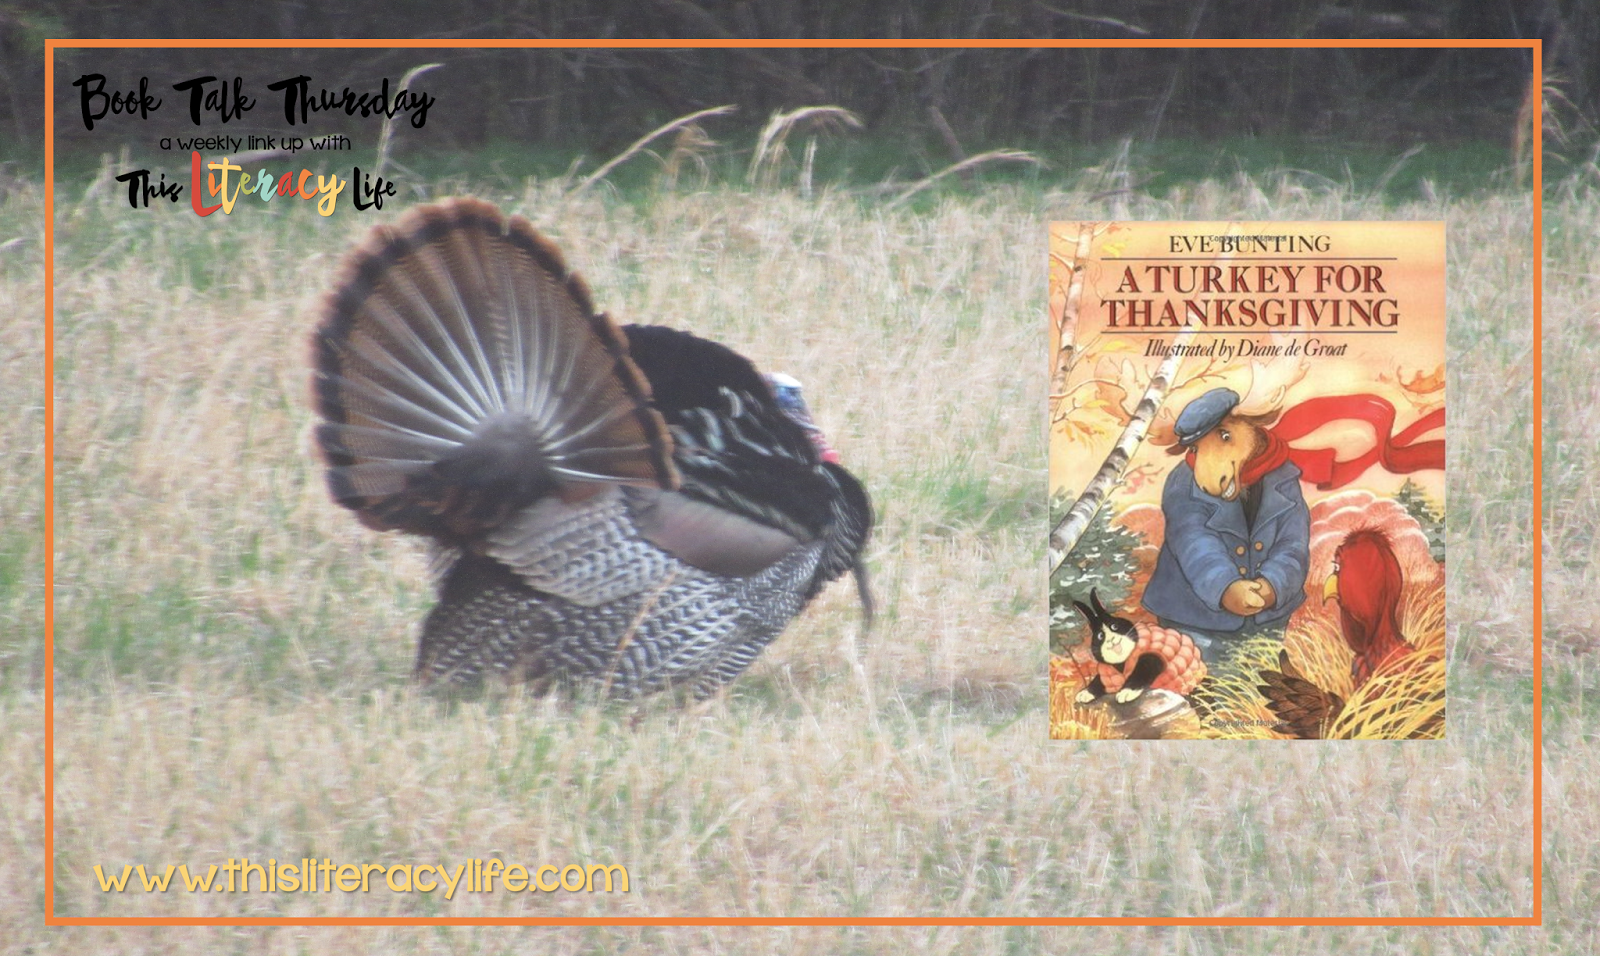 A Turkey For Thanksgiving On Book Talk Thursday